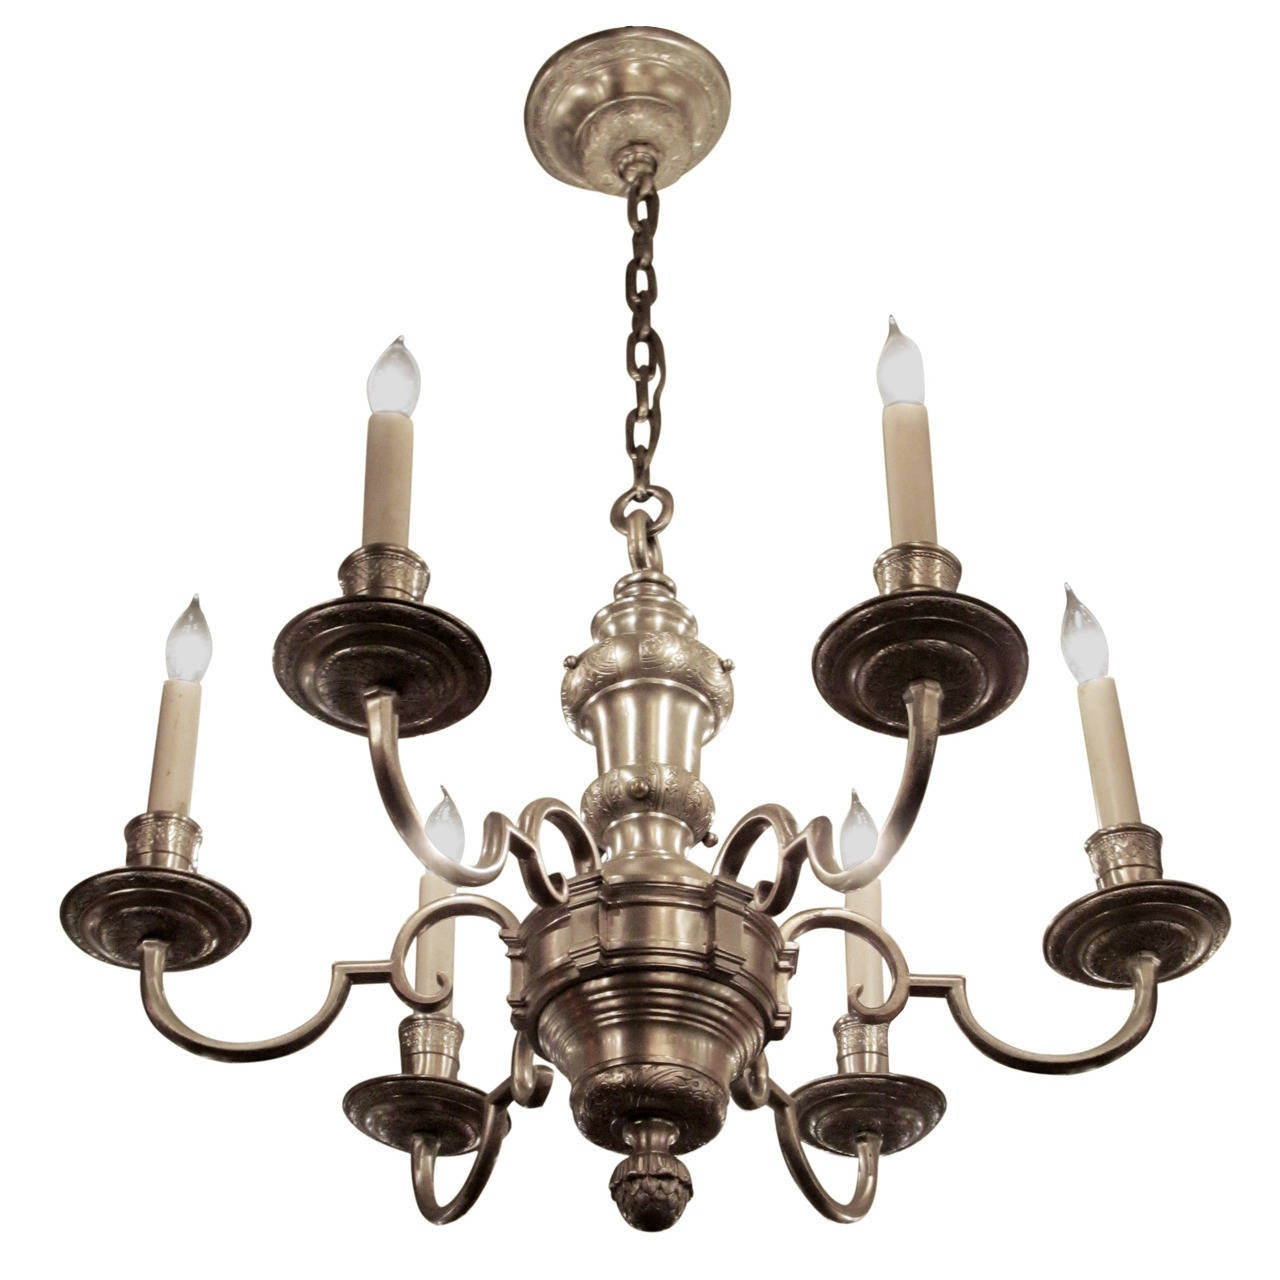 Georgian Chandelier: 1920s, Georgian Silver Plated Bronze Chandelier With Six